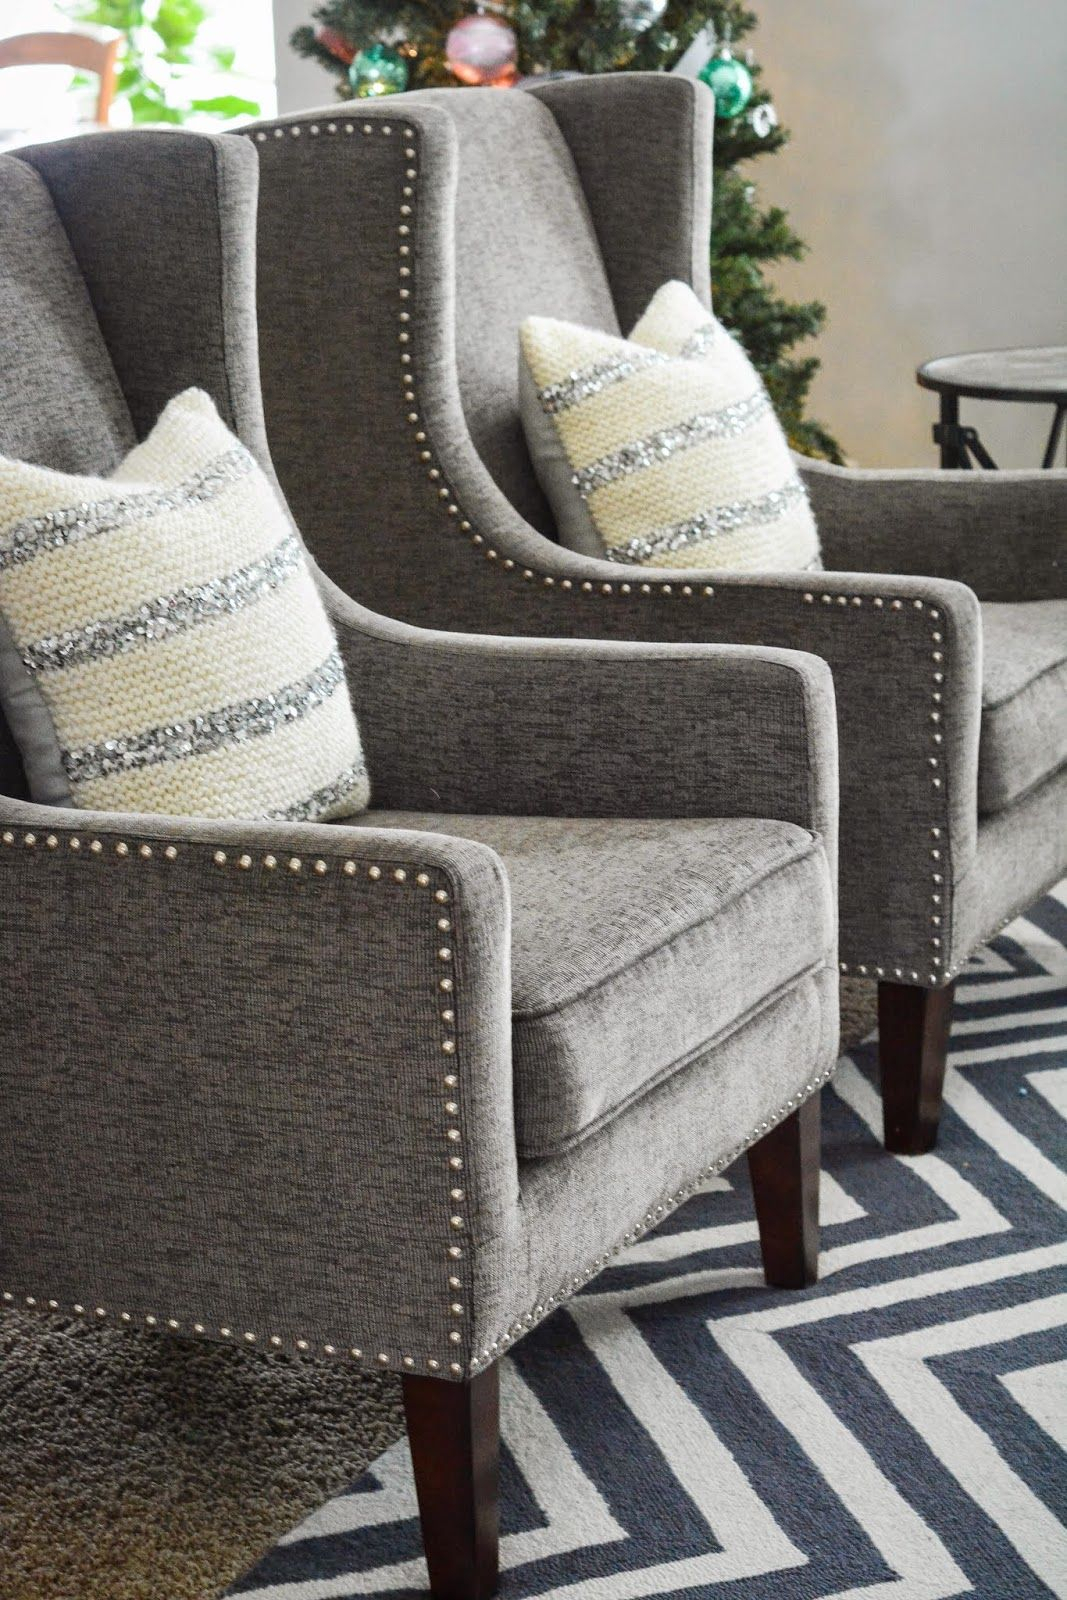 Mandy & Such: Holiday Cheer Around Our Home | Home, Home With Regard To Allis Tufted Polyester Blend Wingback Chairs (View 15 of 15)